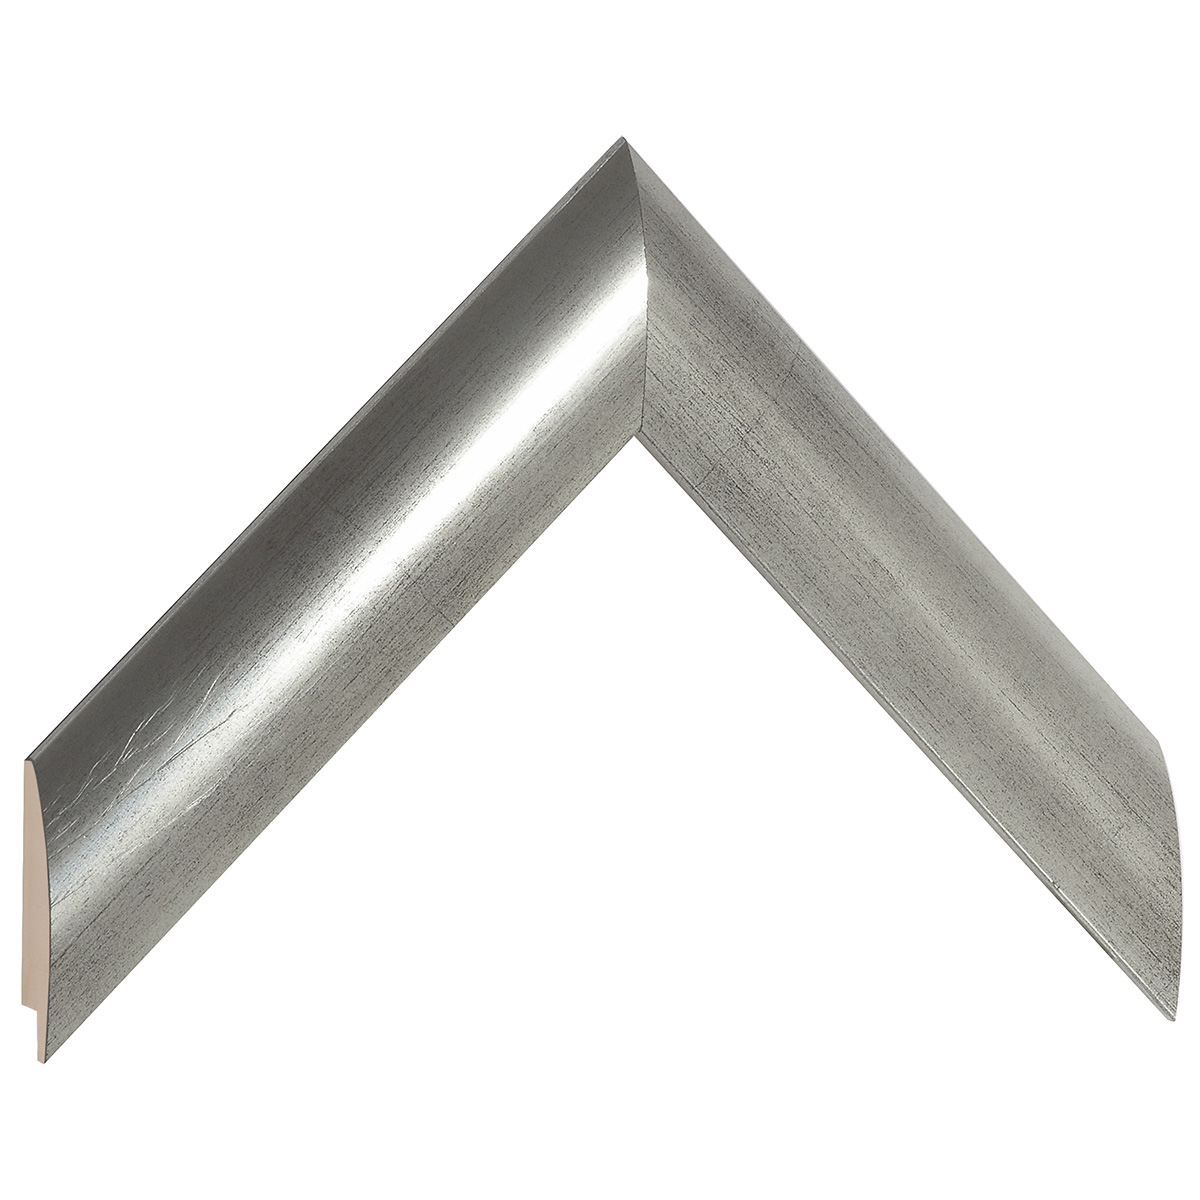 Moulding ayous - width 35mm height 14 - Old silver